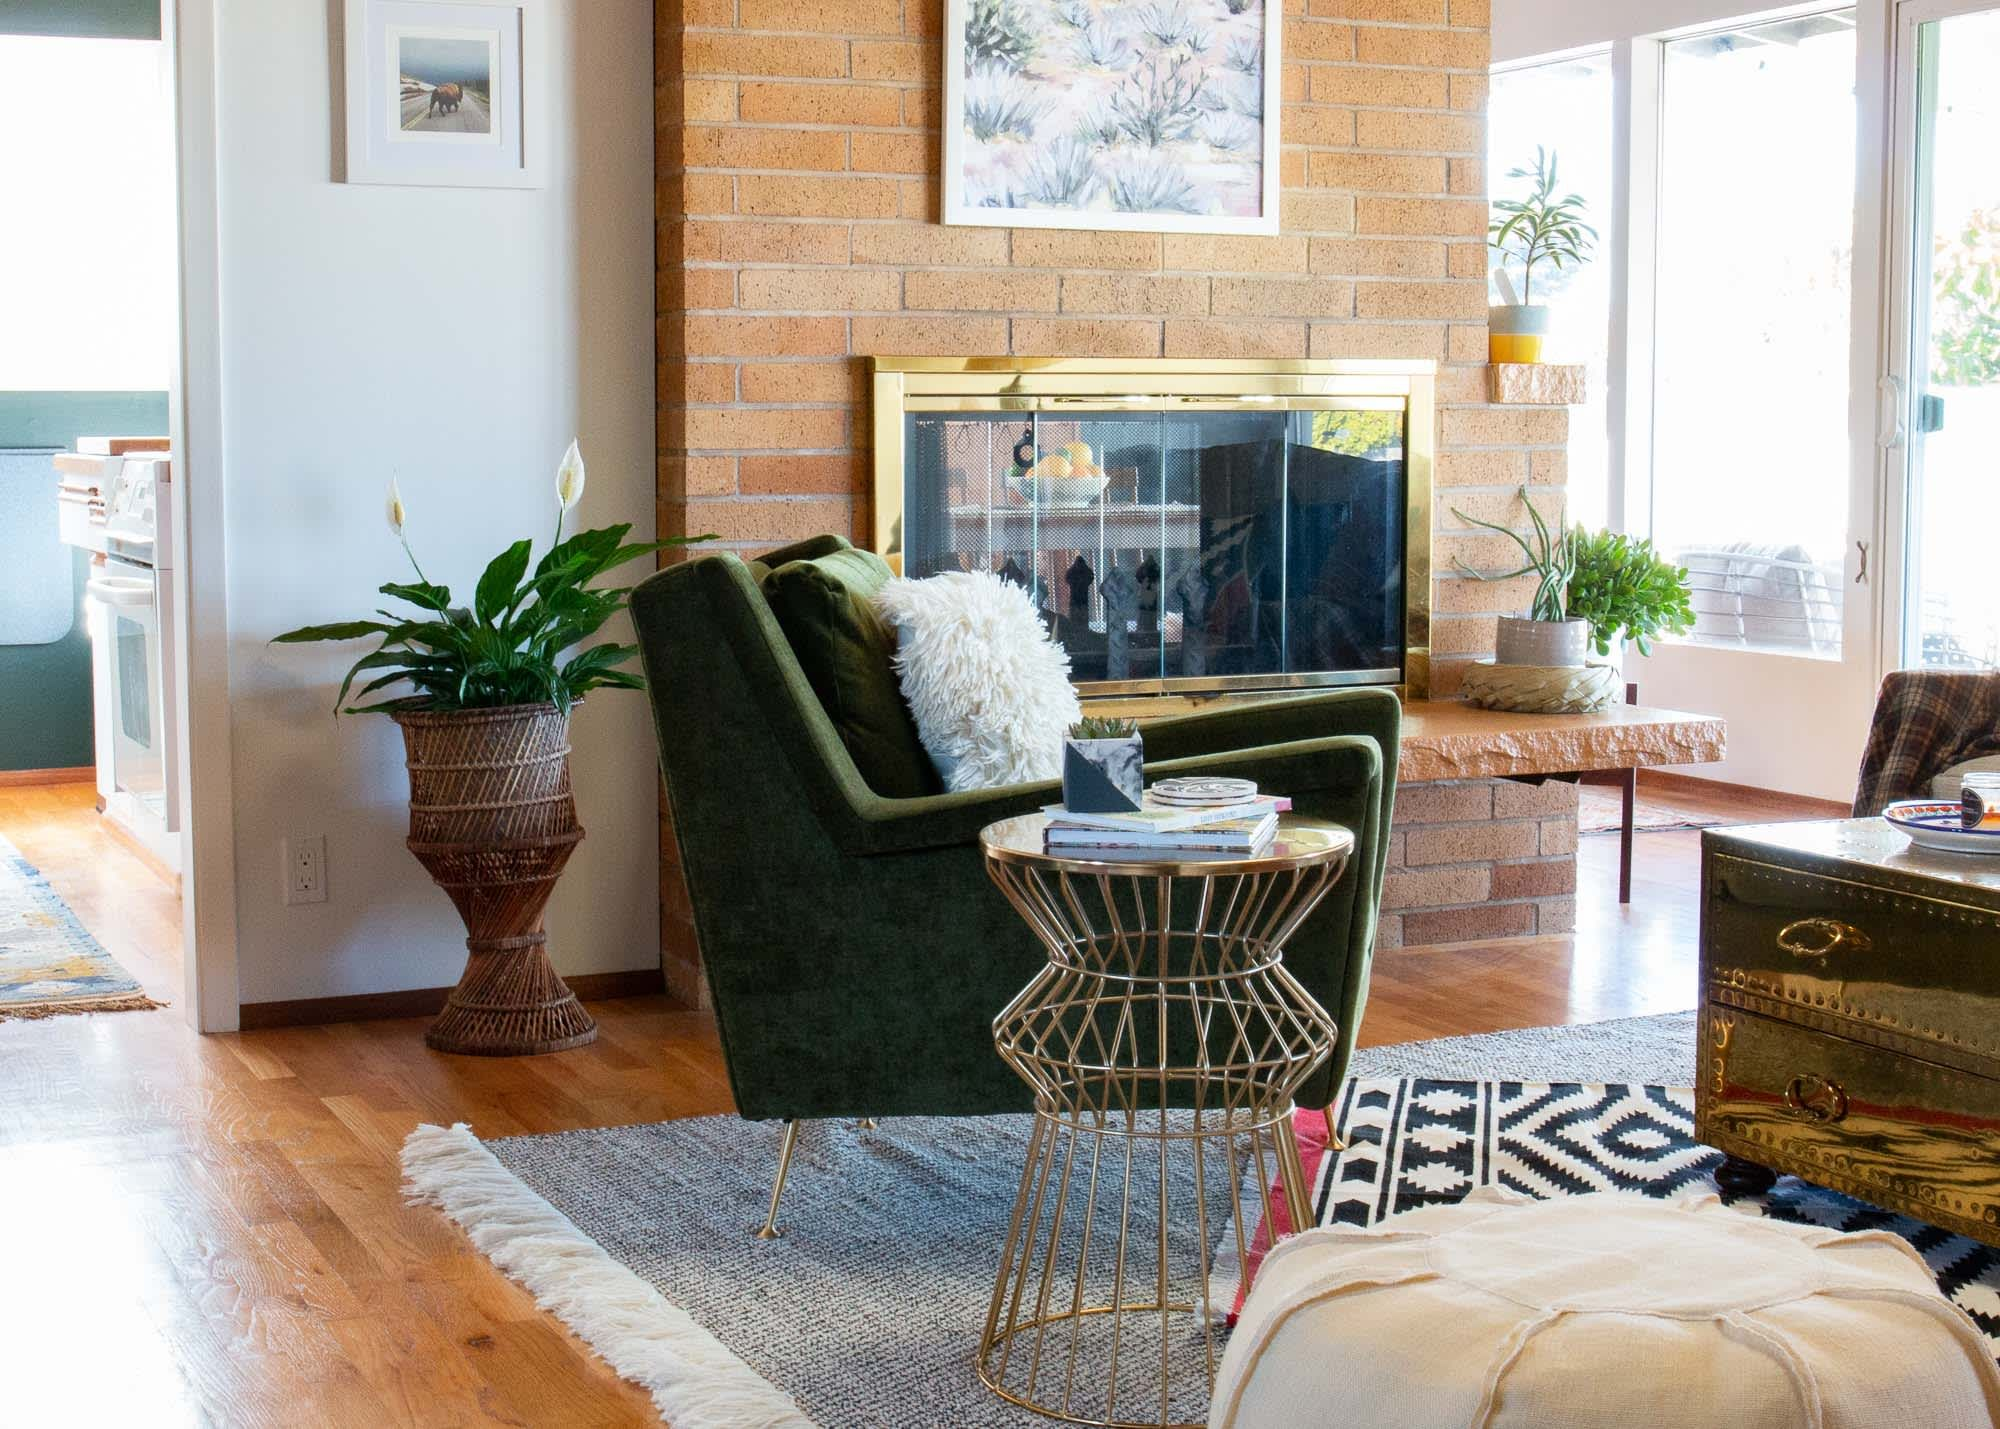 A Seattle Home's Dining Room Has a Great Green Accent Wall